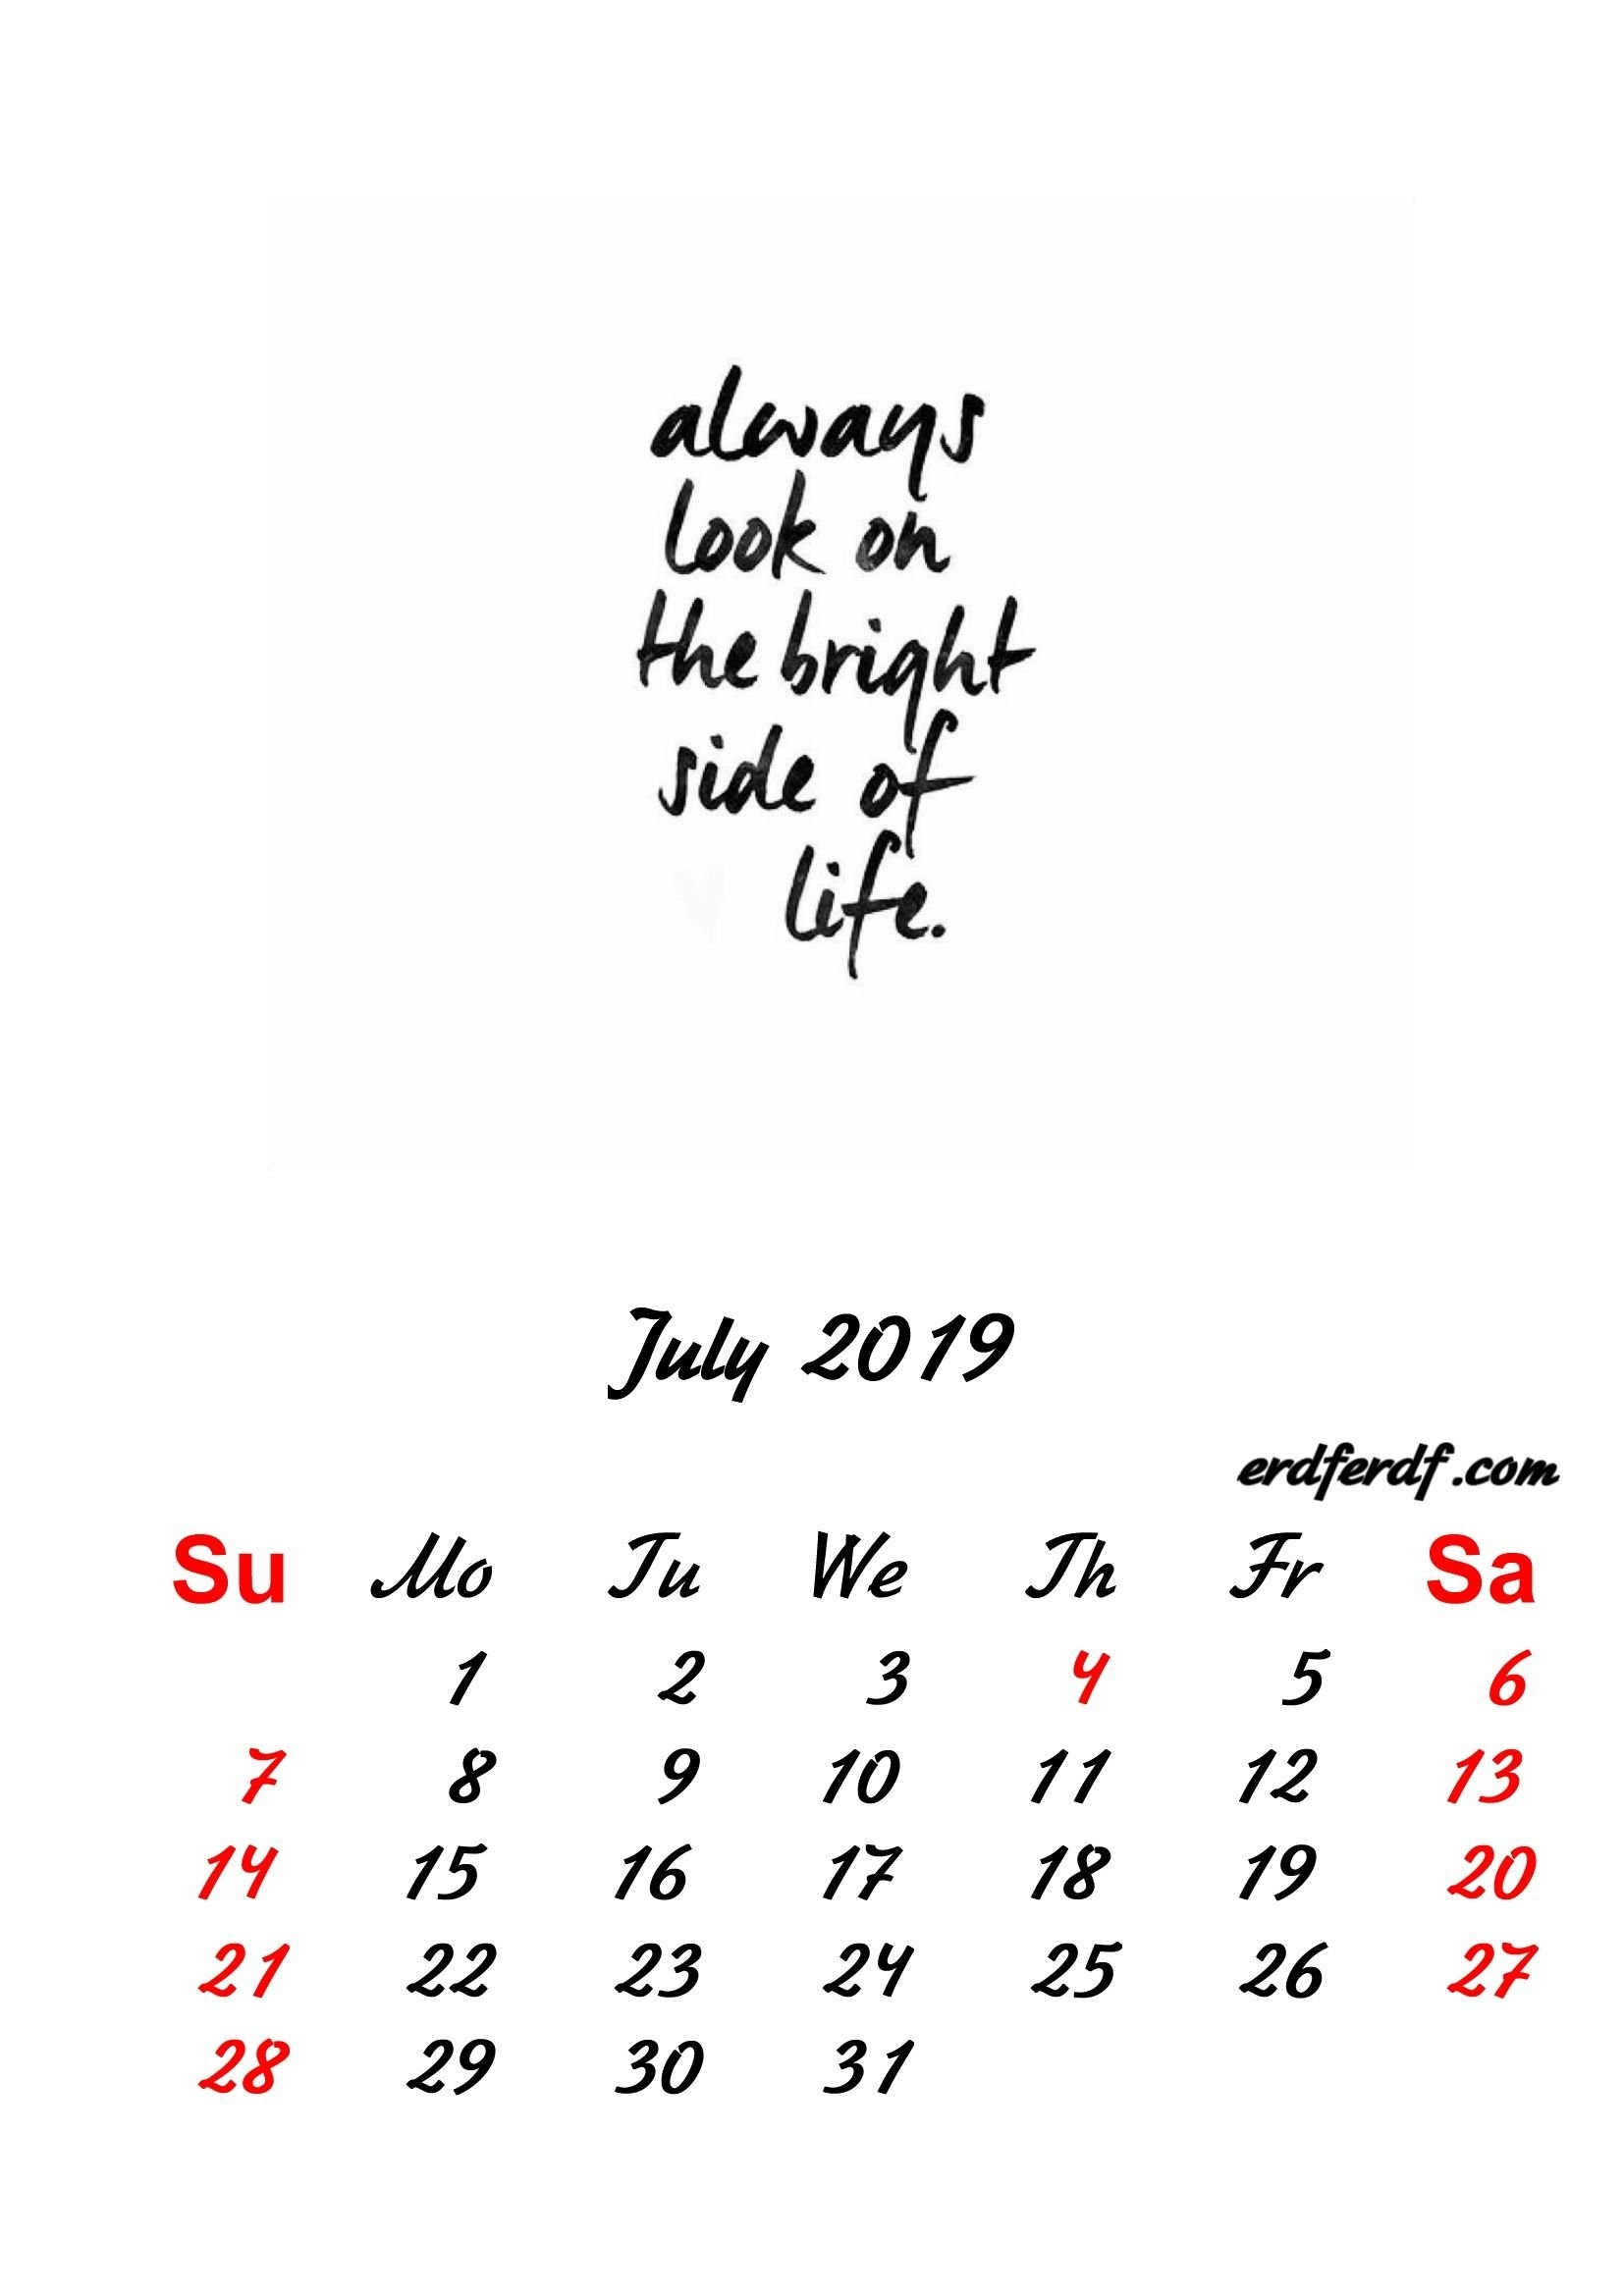 7 July 2019 Inspirational Quotes Pprintable Calendar | Monthly July 7 2019 Calendar